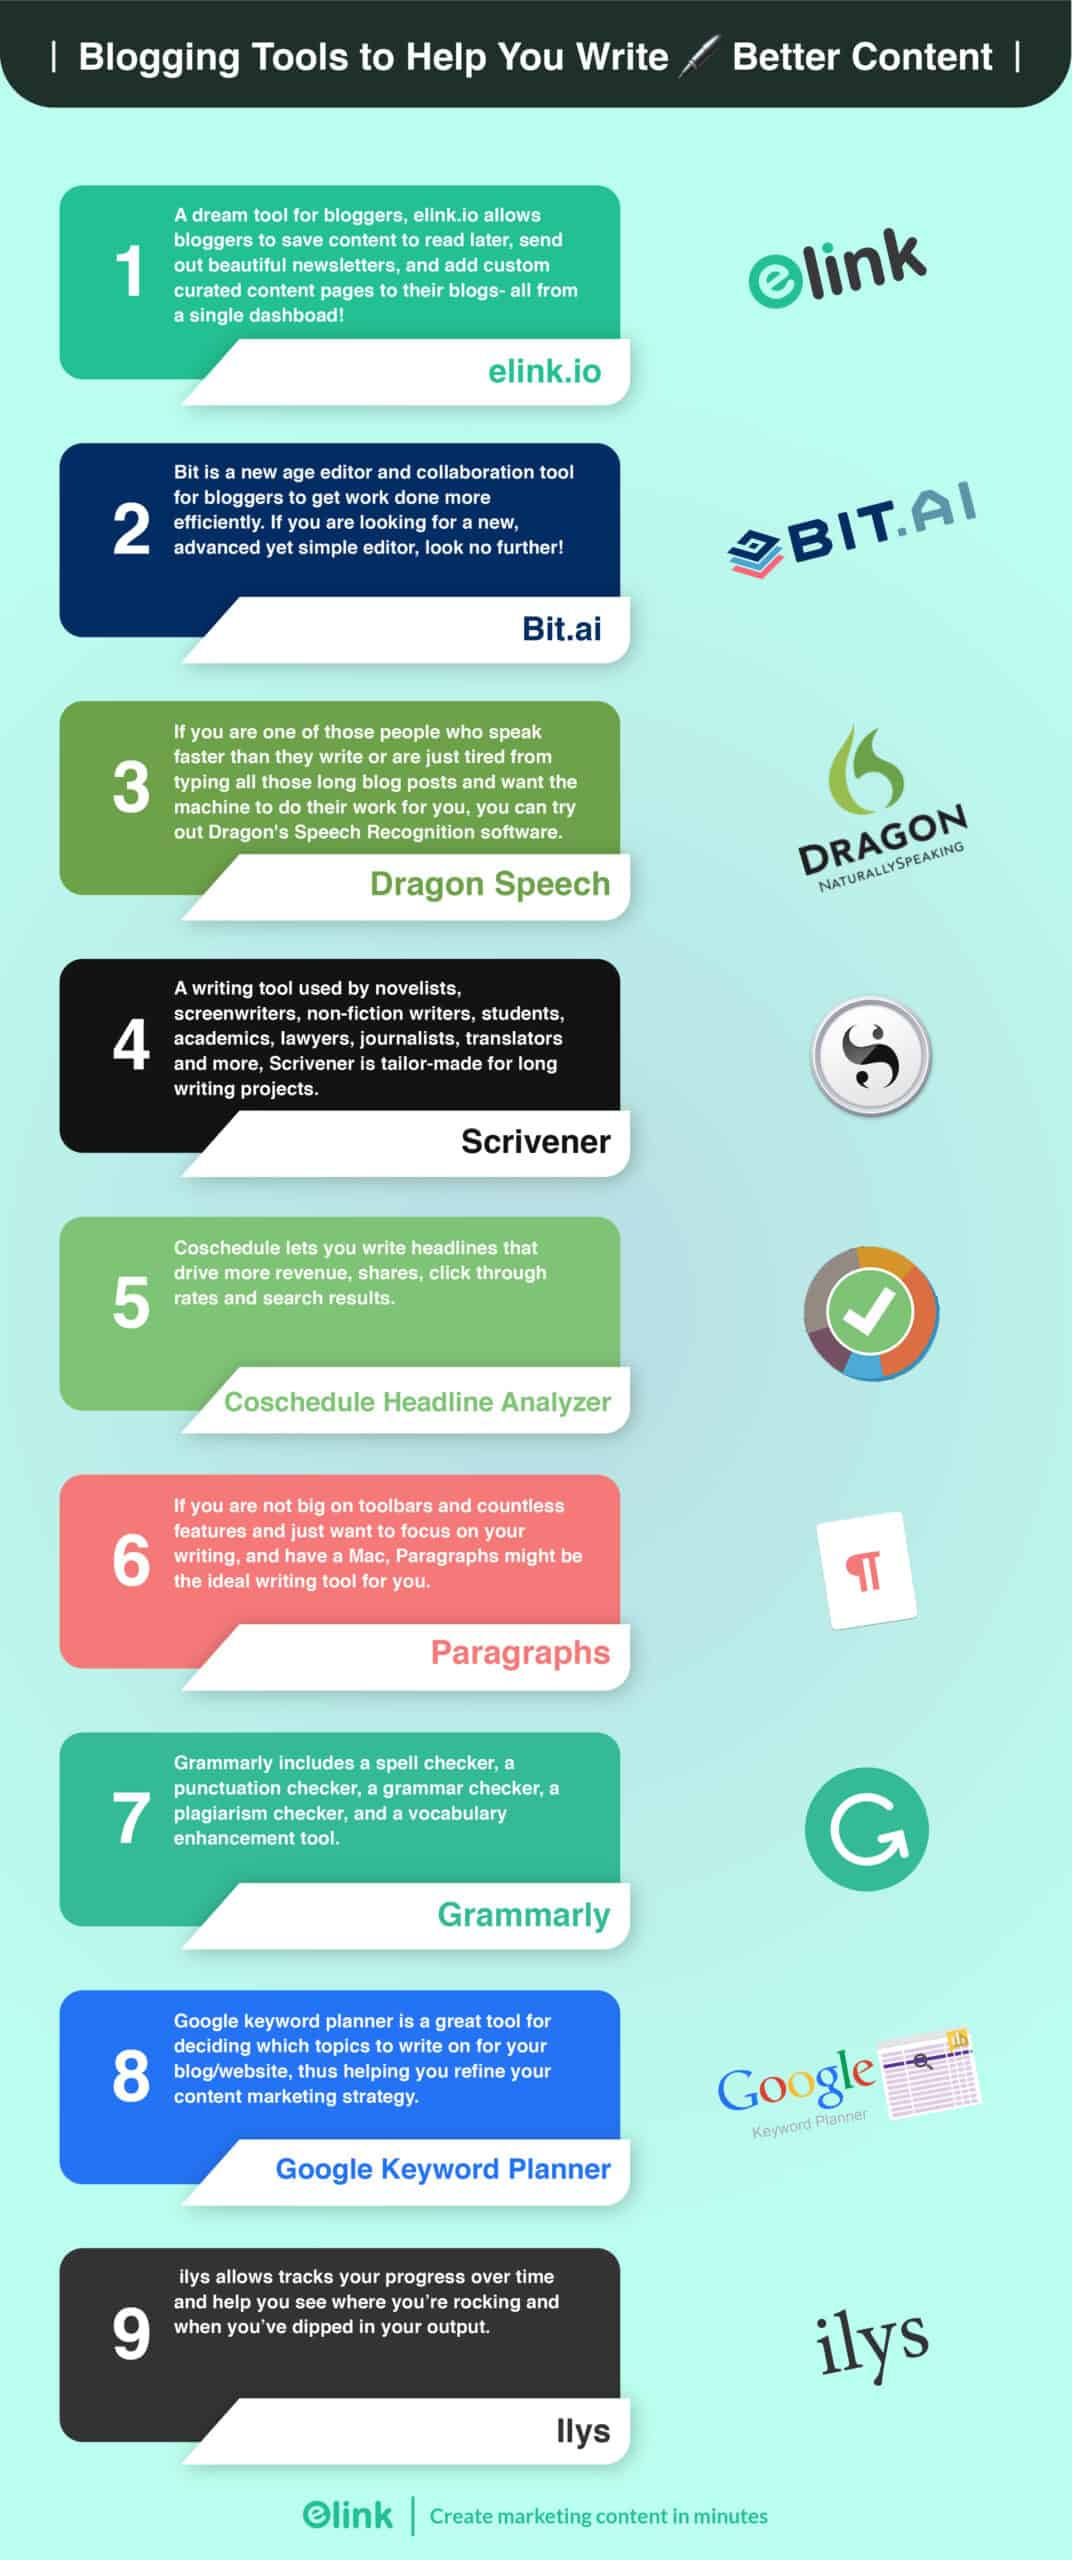 Learn about these great tools that will help you be better bloggers, in this great infographic!